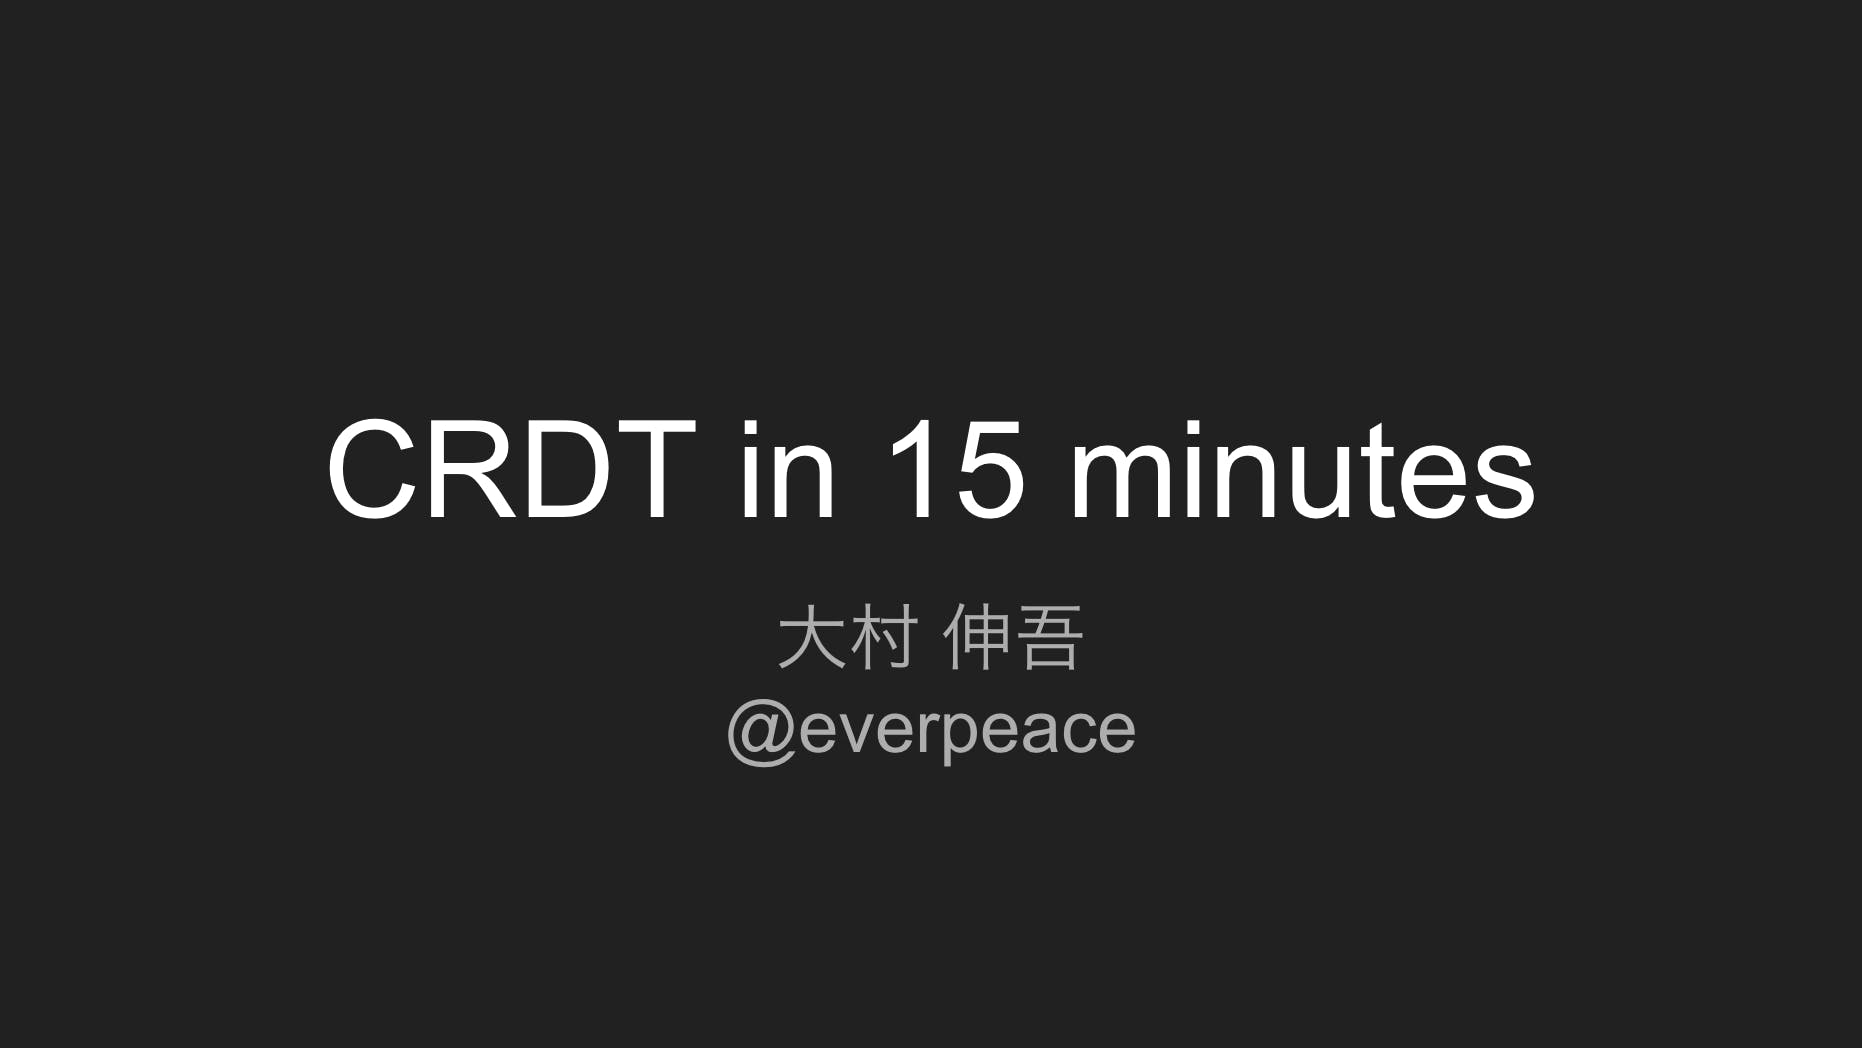 CRDT in 15 minutes